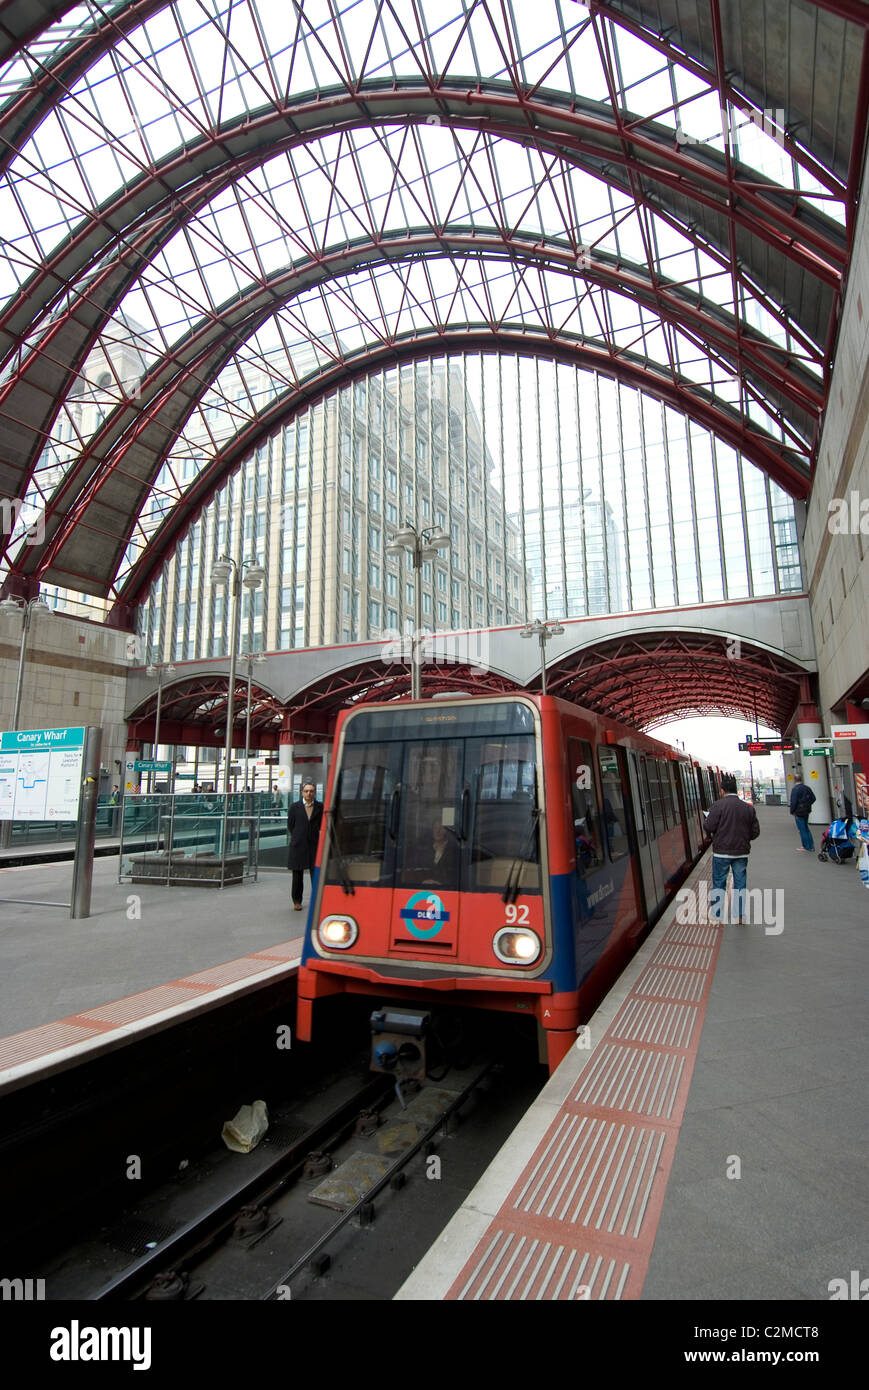 Docklands Light Railway Train at Canary Wharf station, London. - Stock Image